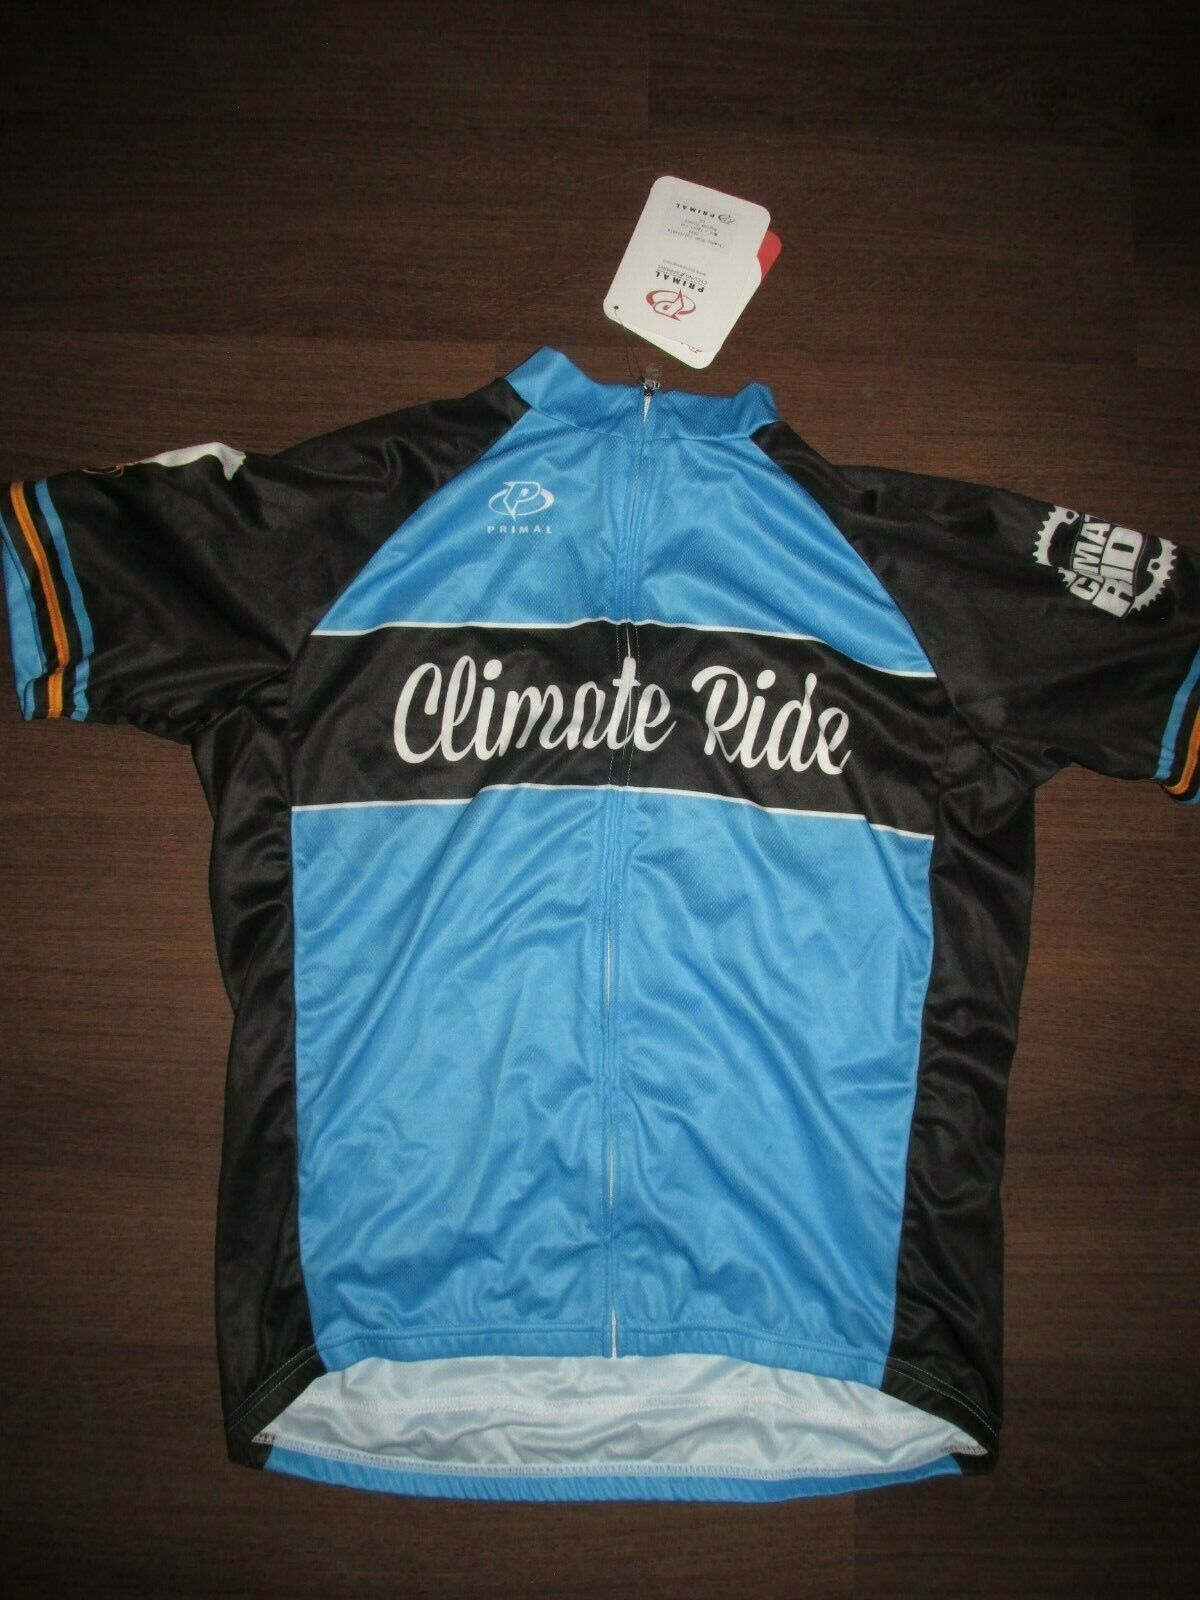 Primal Climate Ride California Full Zip Cycling Jersey Men's L NEW Z-16